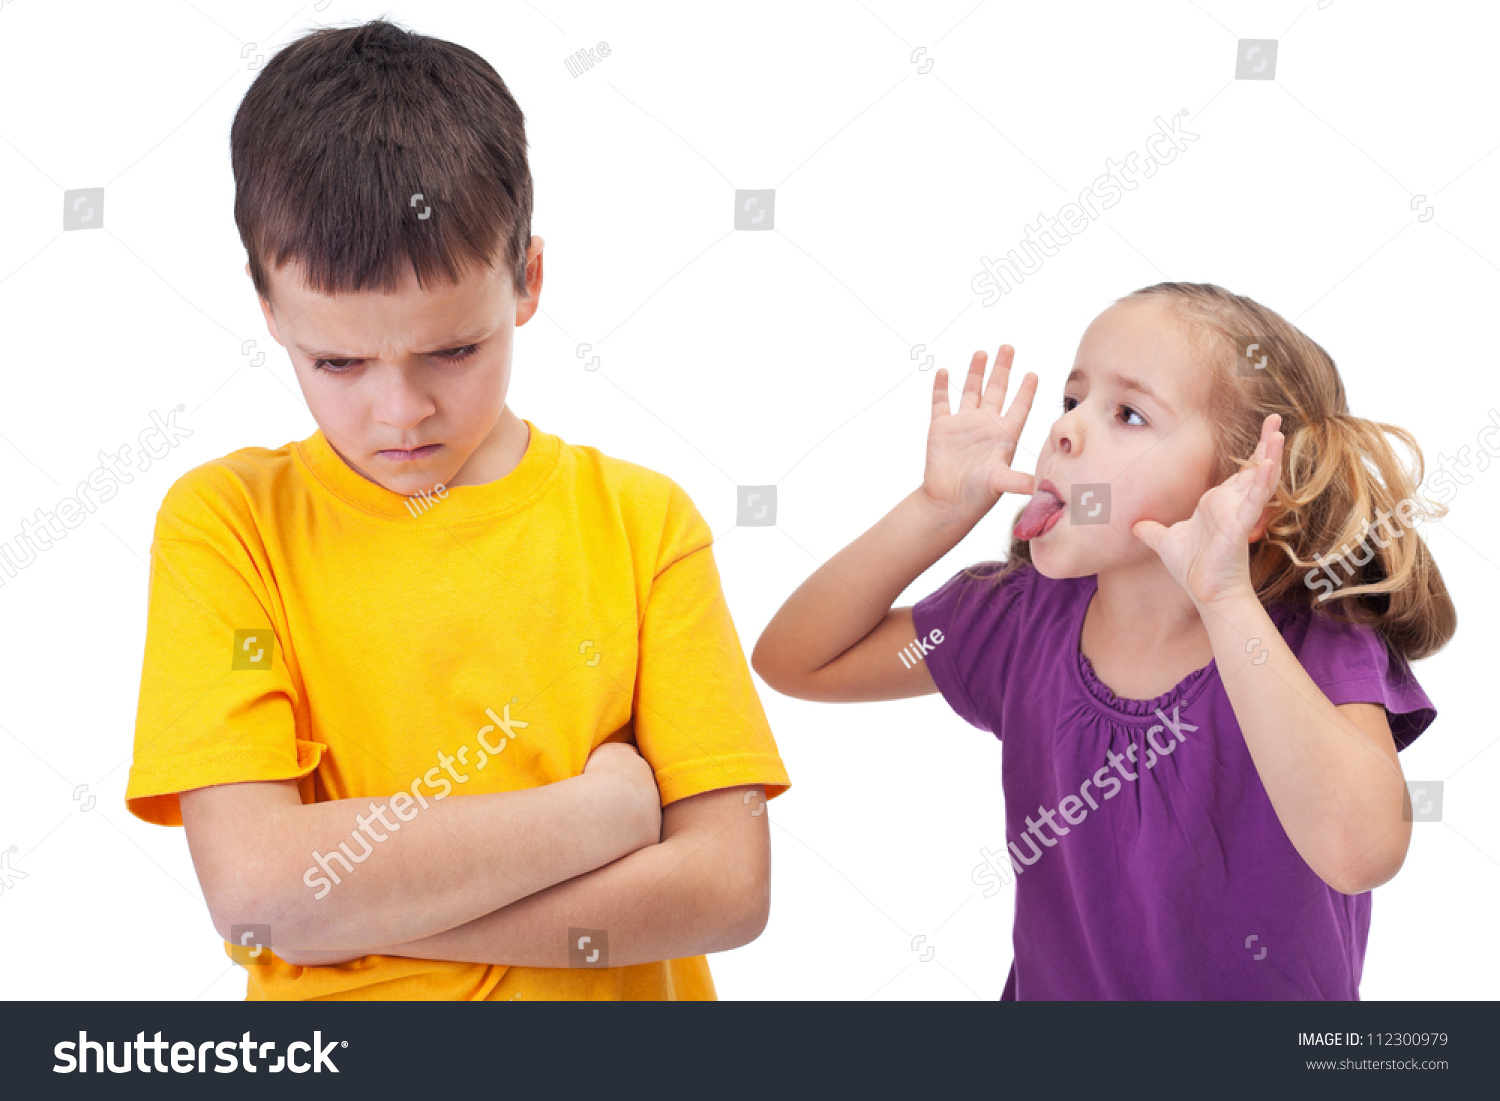 Image result for happy girl and upset boy